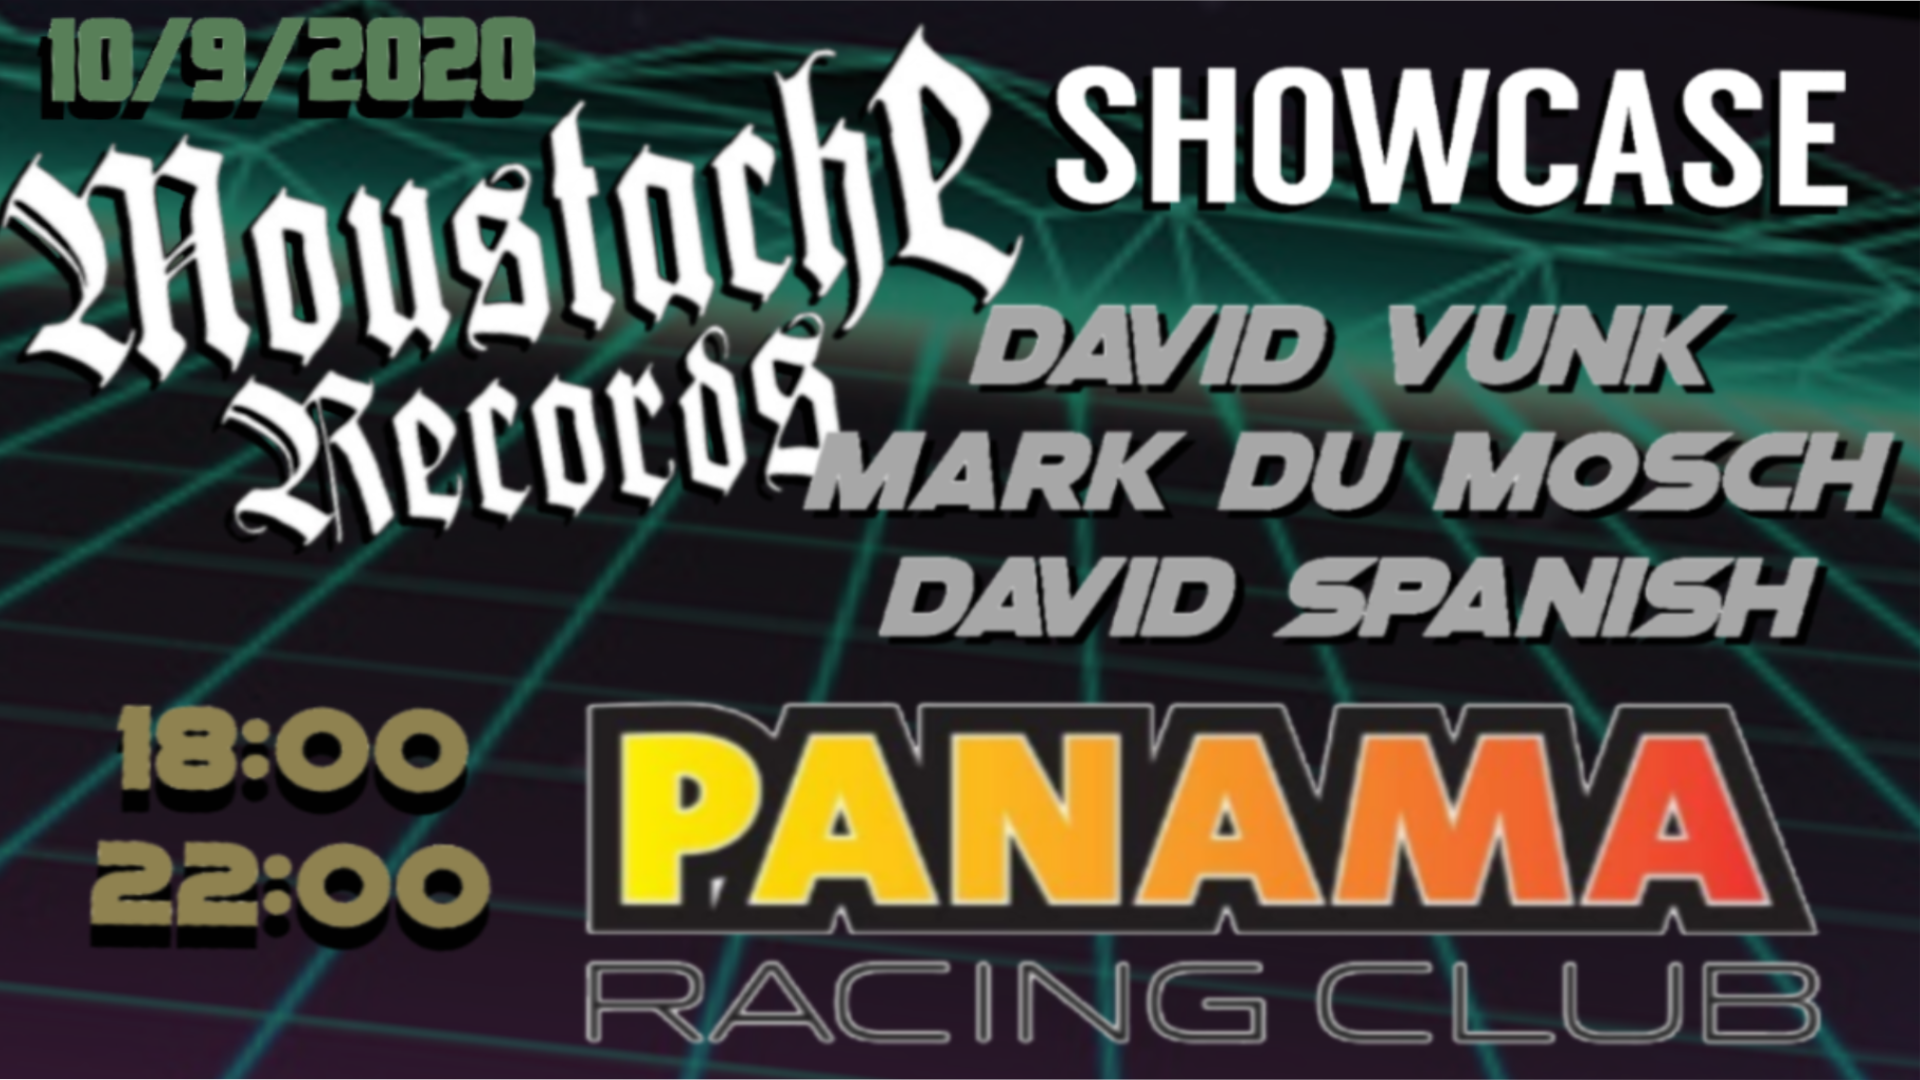 Moustache Records Showcase Feat. David Vunk, Mark Du Mosch & David Spanish